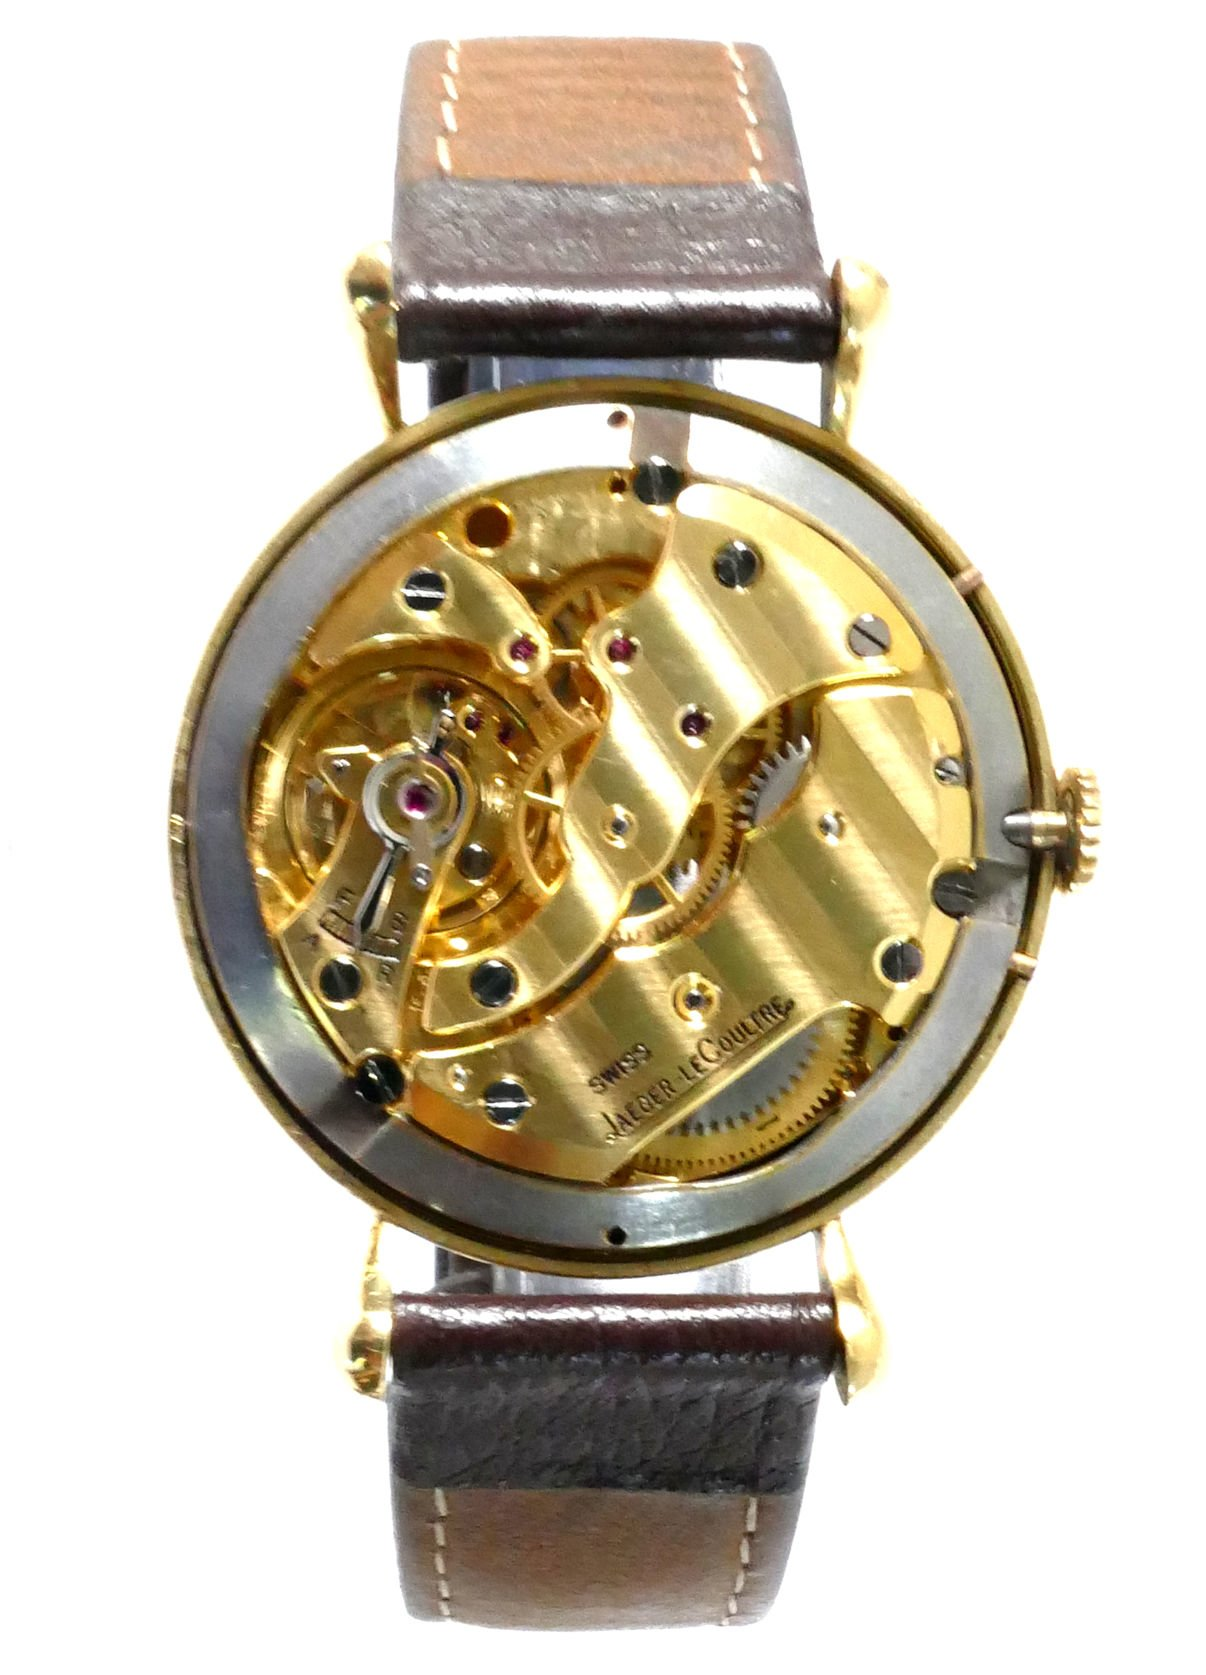 watch watches solid vintage empressissi products pie pan gold benrus gents